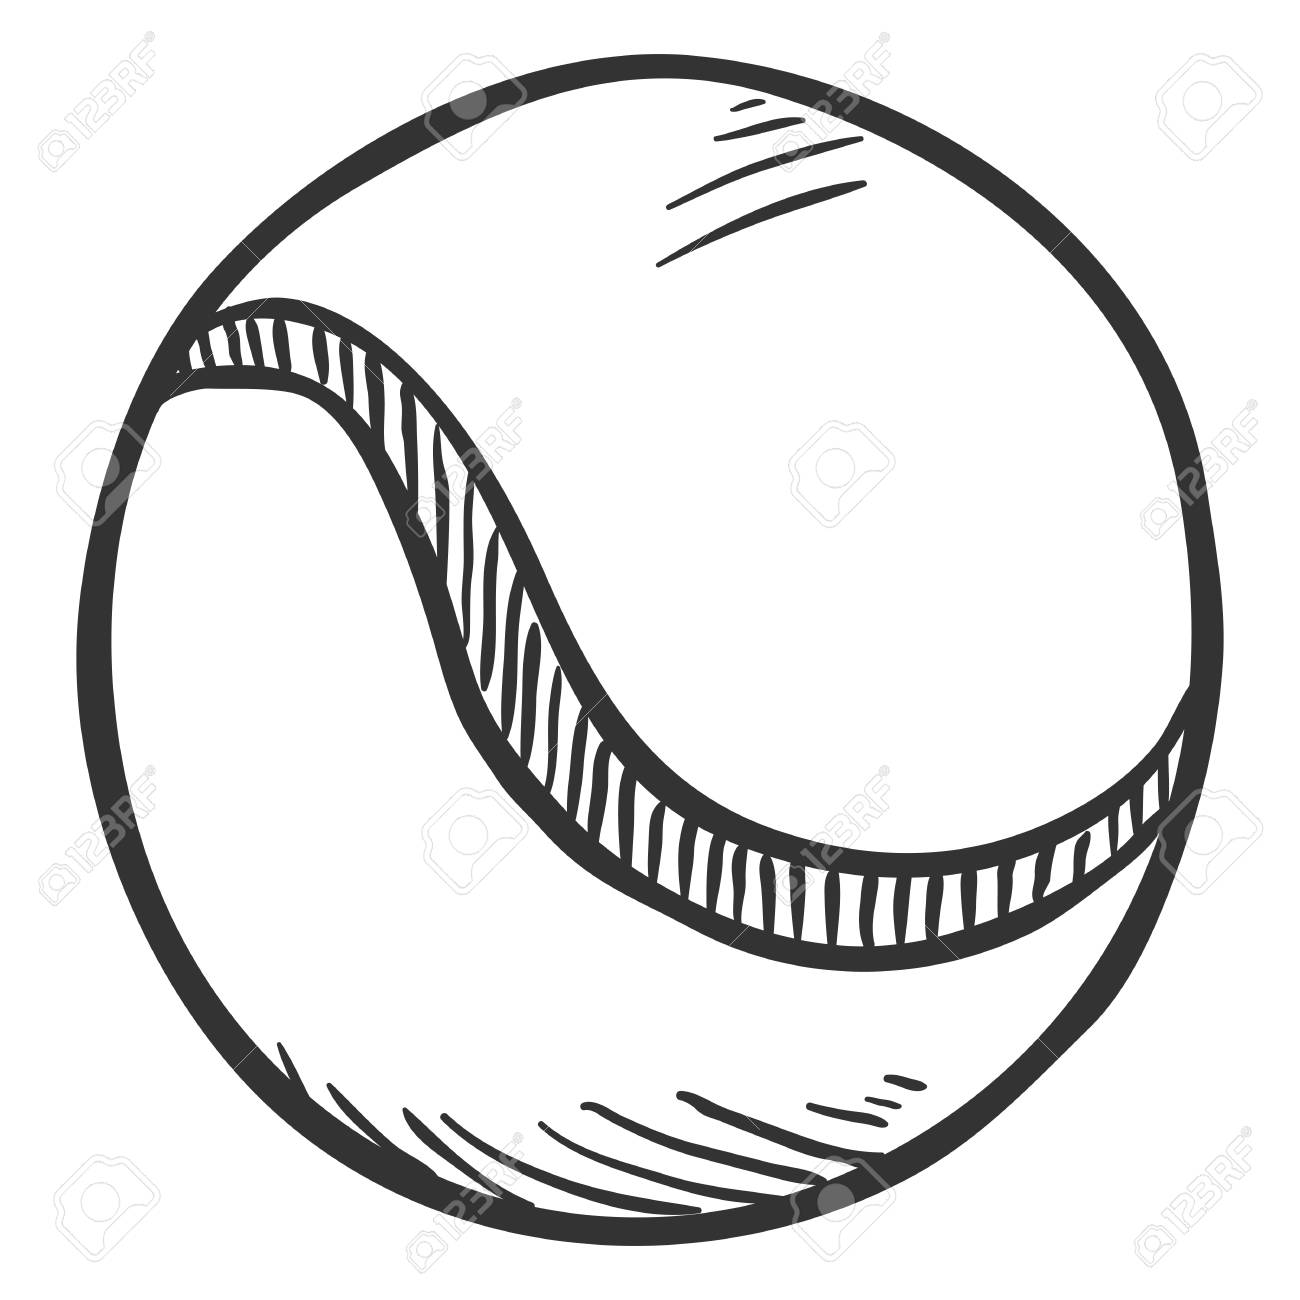 Vector pencil sketch tennis ball on white background